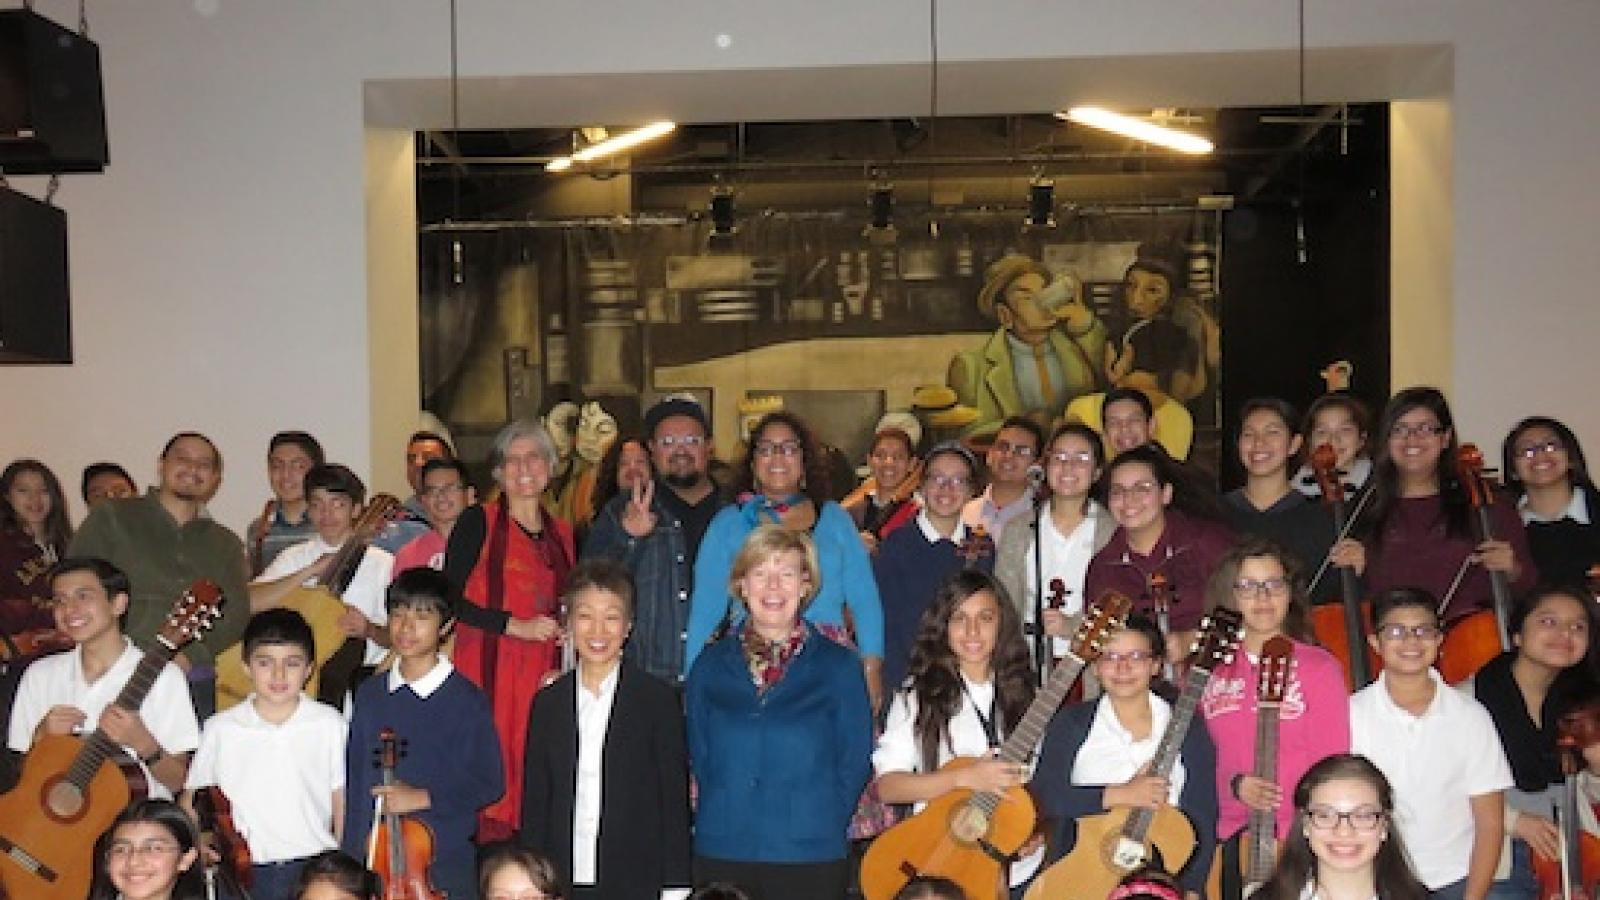 Jane Chu and Senator Tammy Baldwin with a large group of kids holding stringed instruments